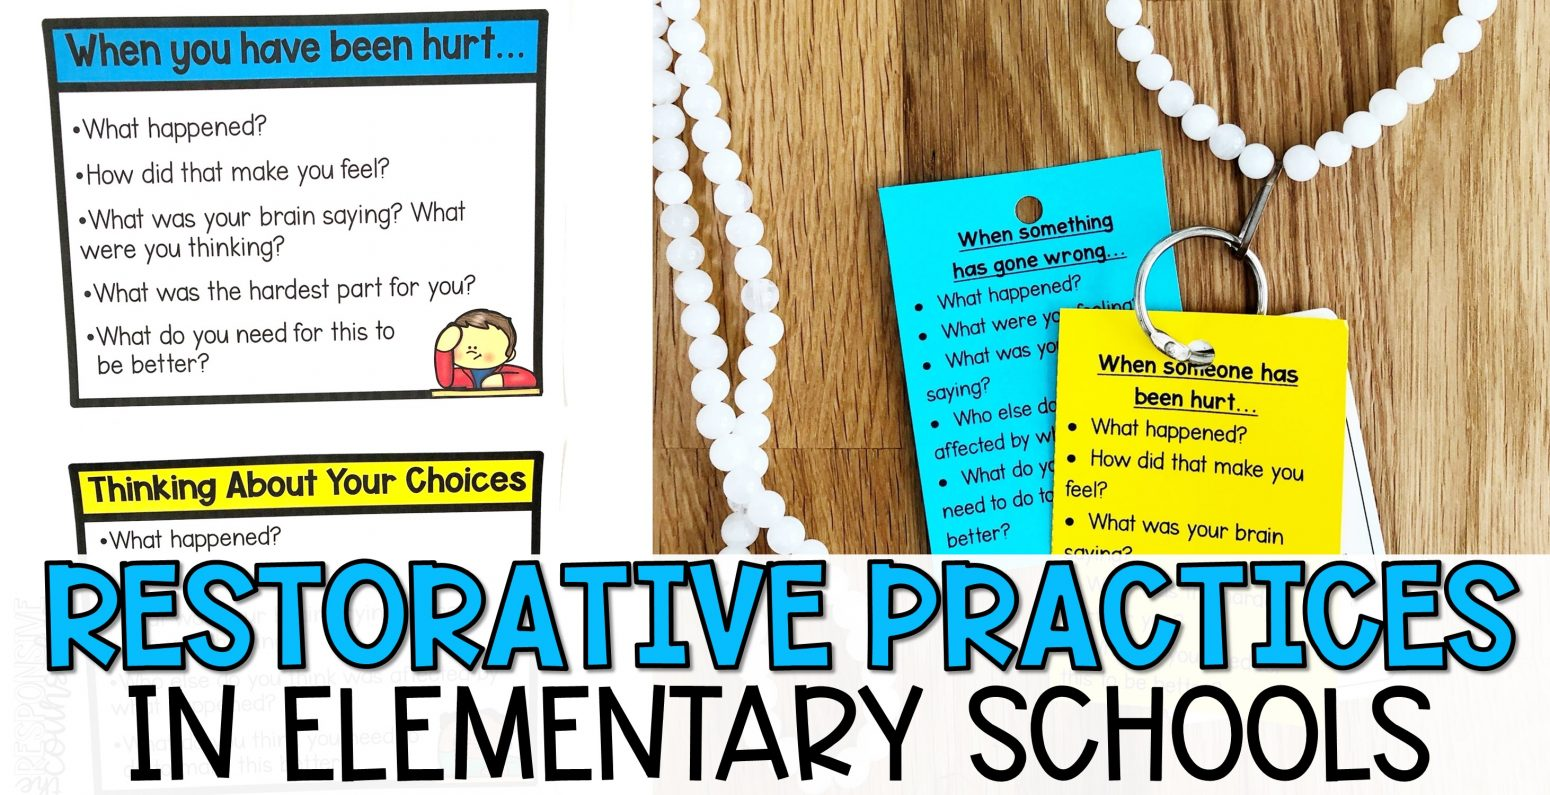 restorative practices in elementary schools